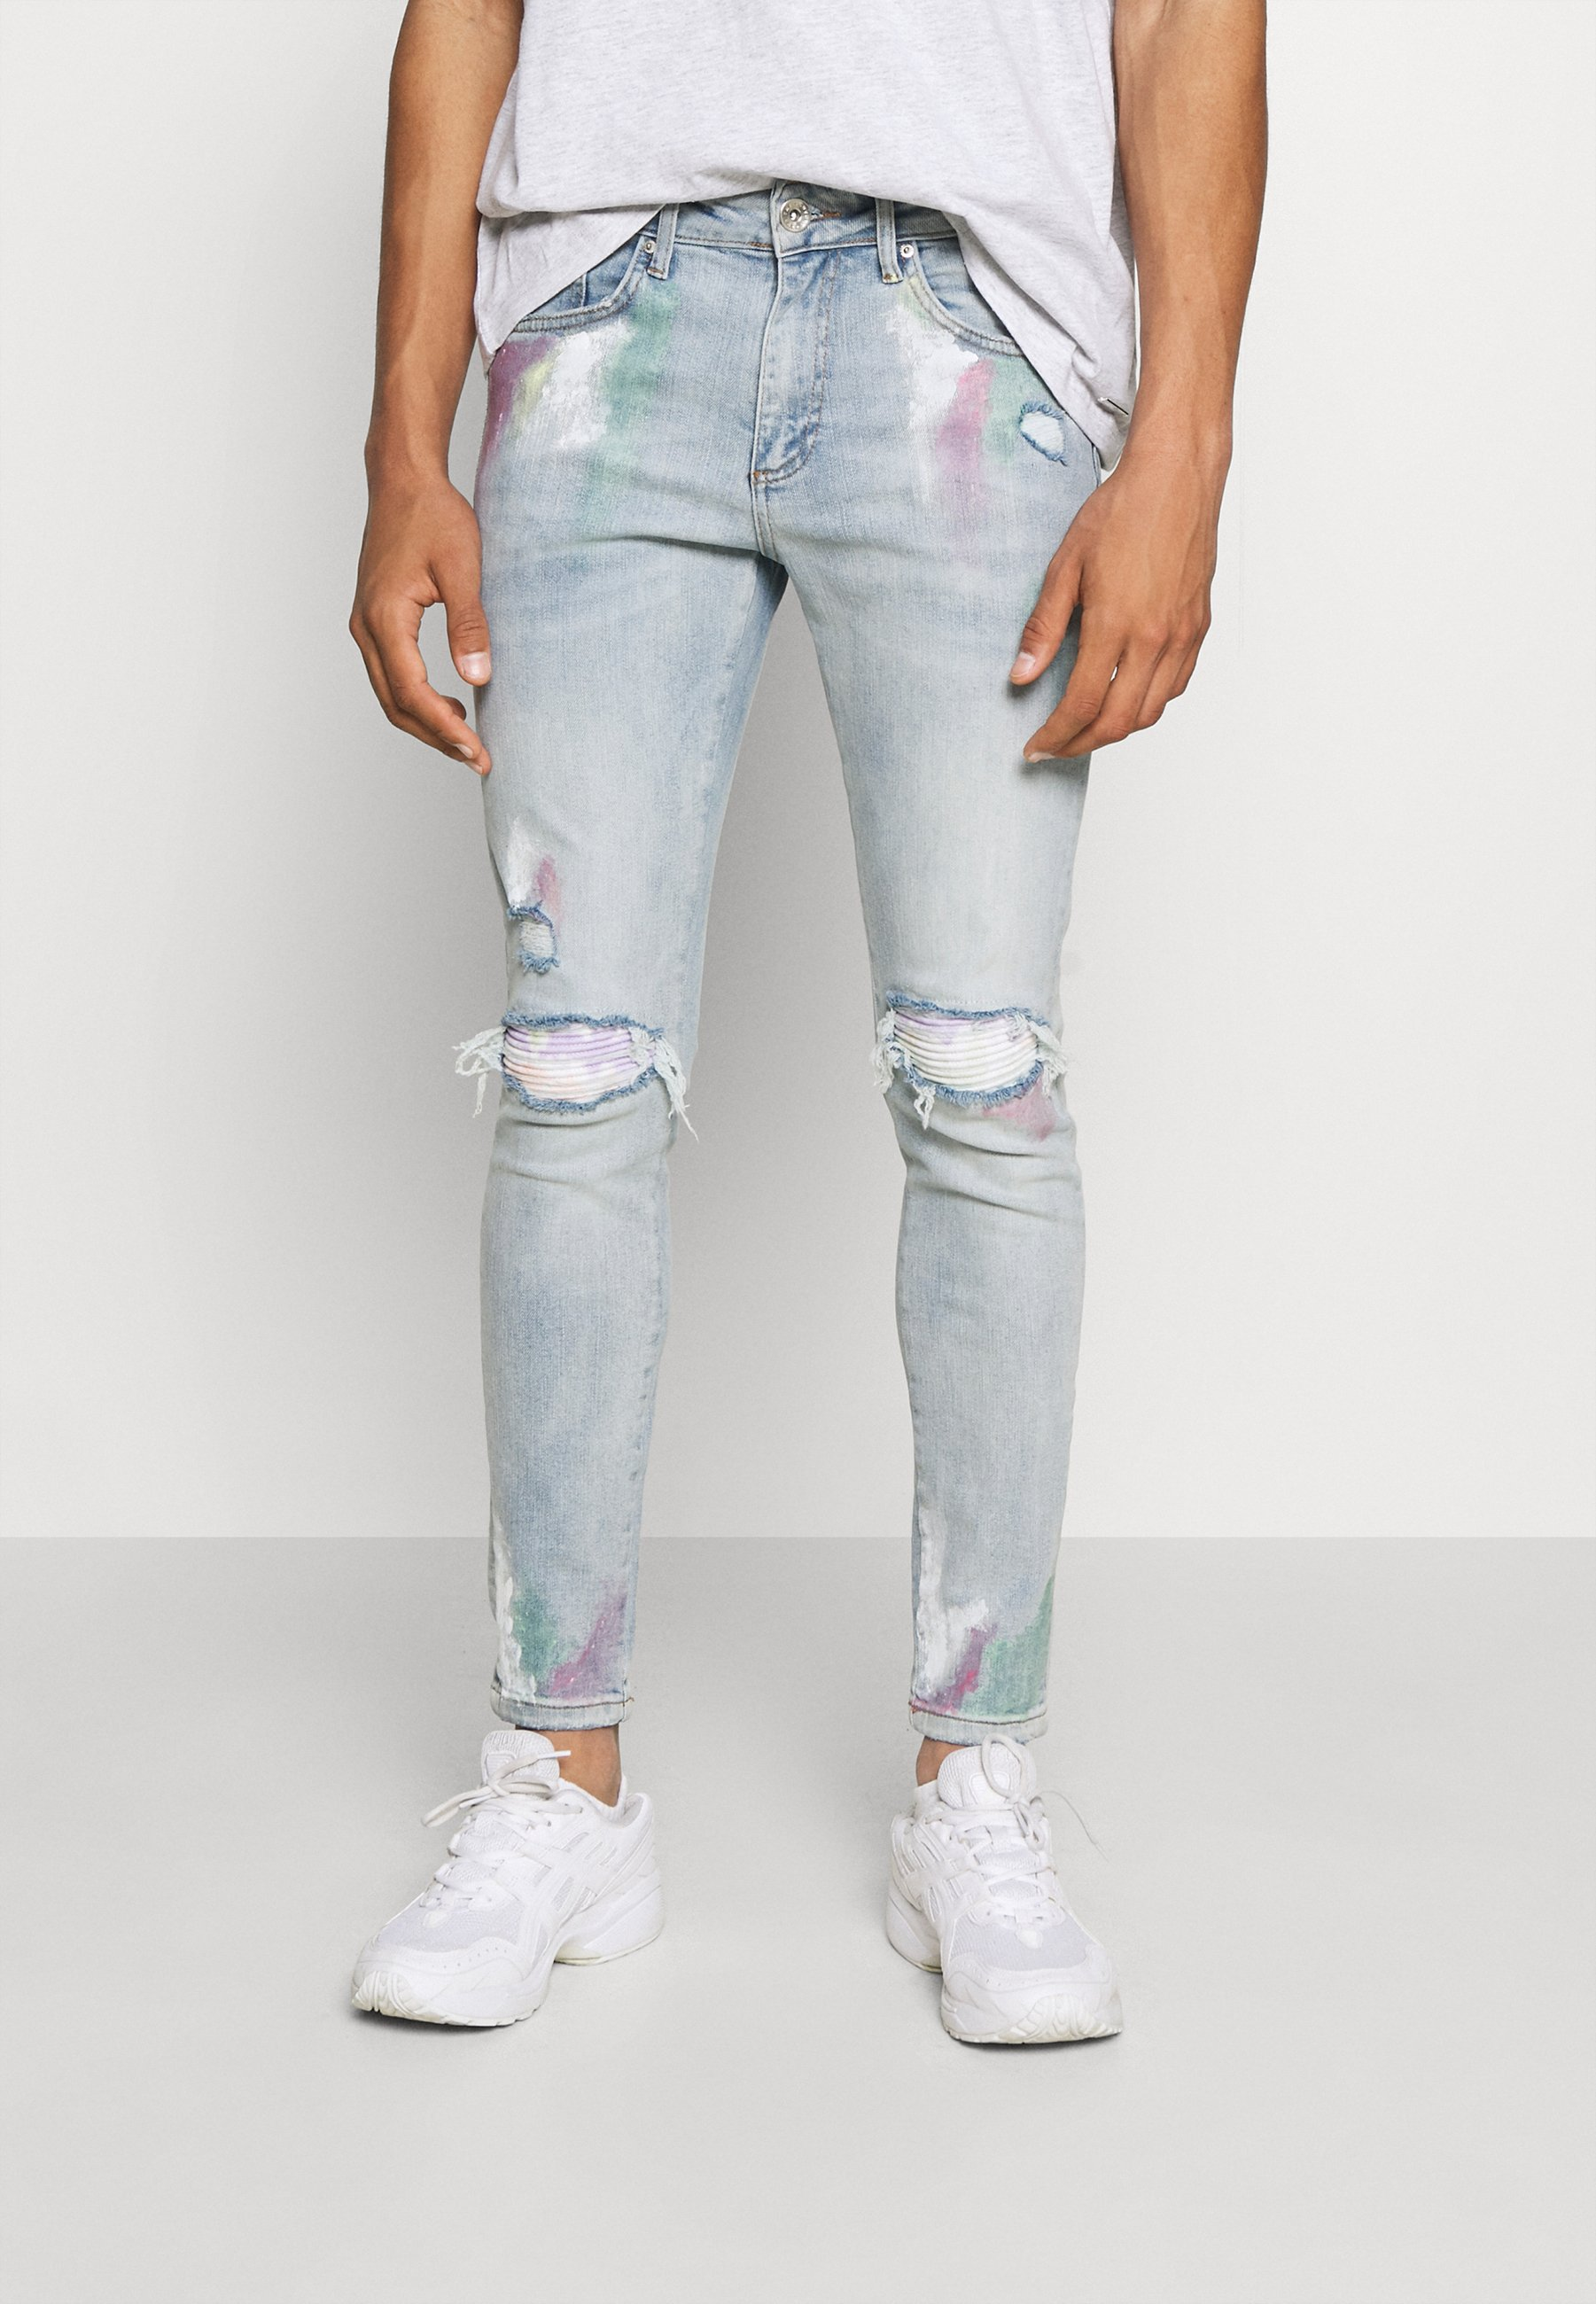 Men SLIM FIT PAISLEY RIP UPDATE WITH PASTEL PAINT AND PAISLEY - Slim fit jeans